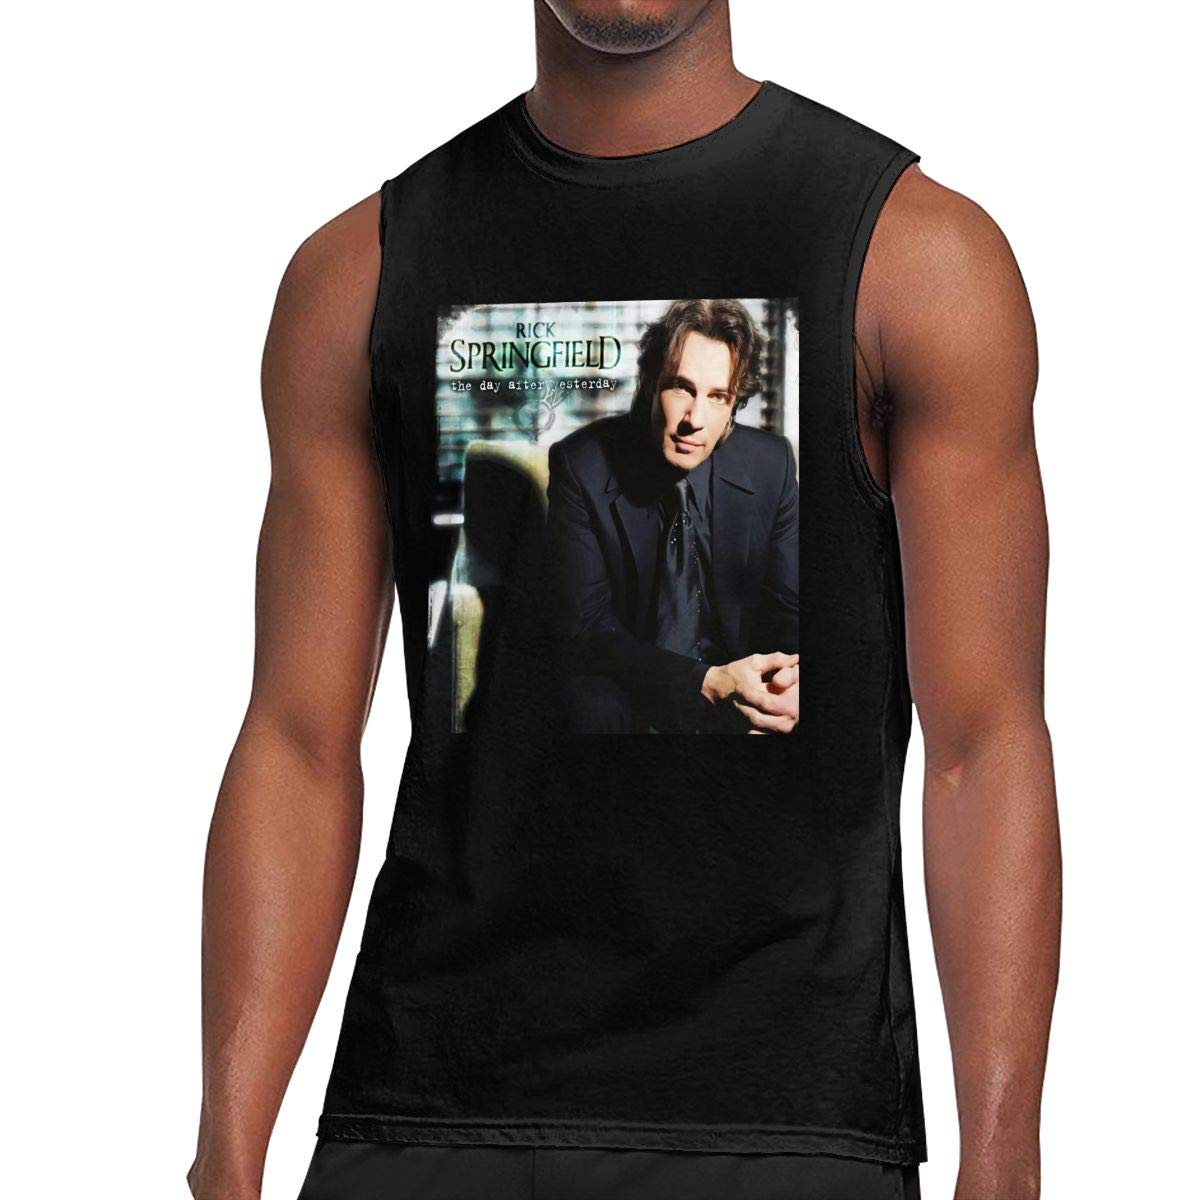 Rick Springfield The Day After Yesterday Man Classic Comfort Leisure Sleeveless Tshirt Bla